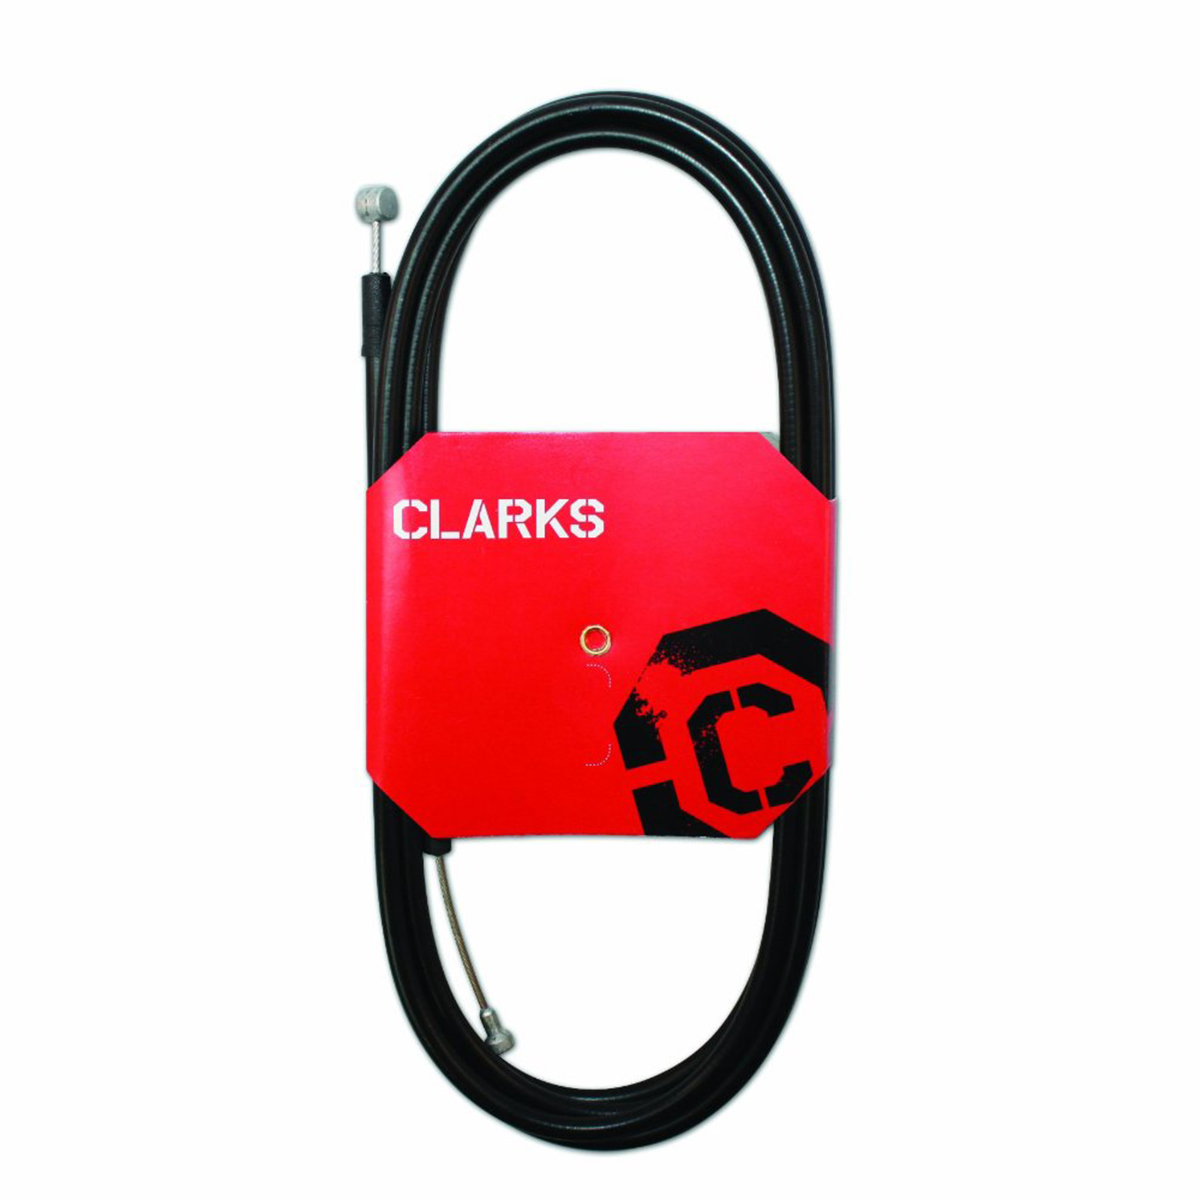 Clarks Zero G Light Weight Brake Kit Compatible with MTB / Hybrid & Road Red